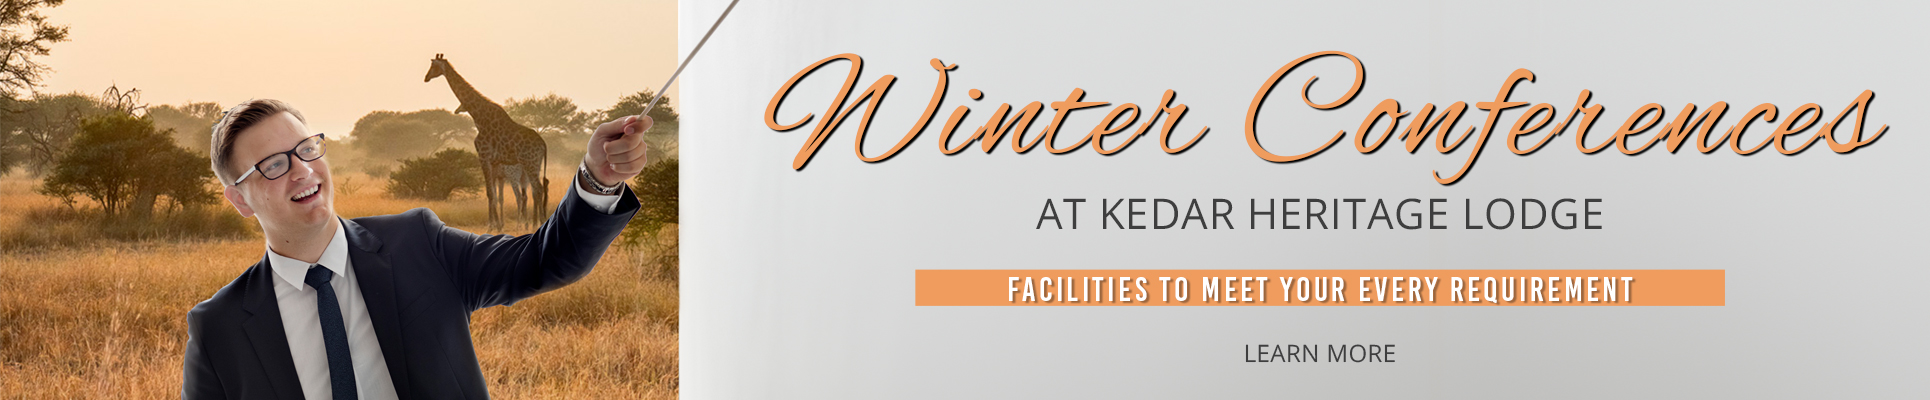 Kedar Heritage Lodge Winter Conference Specials 2019